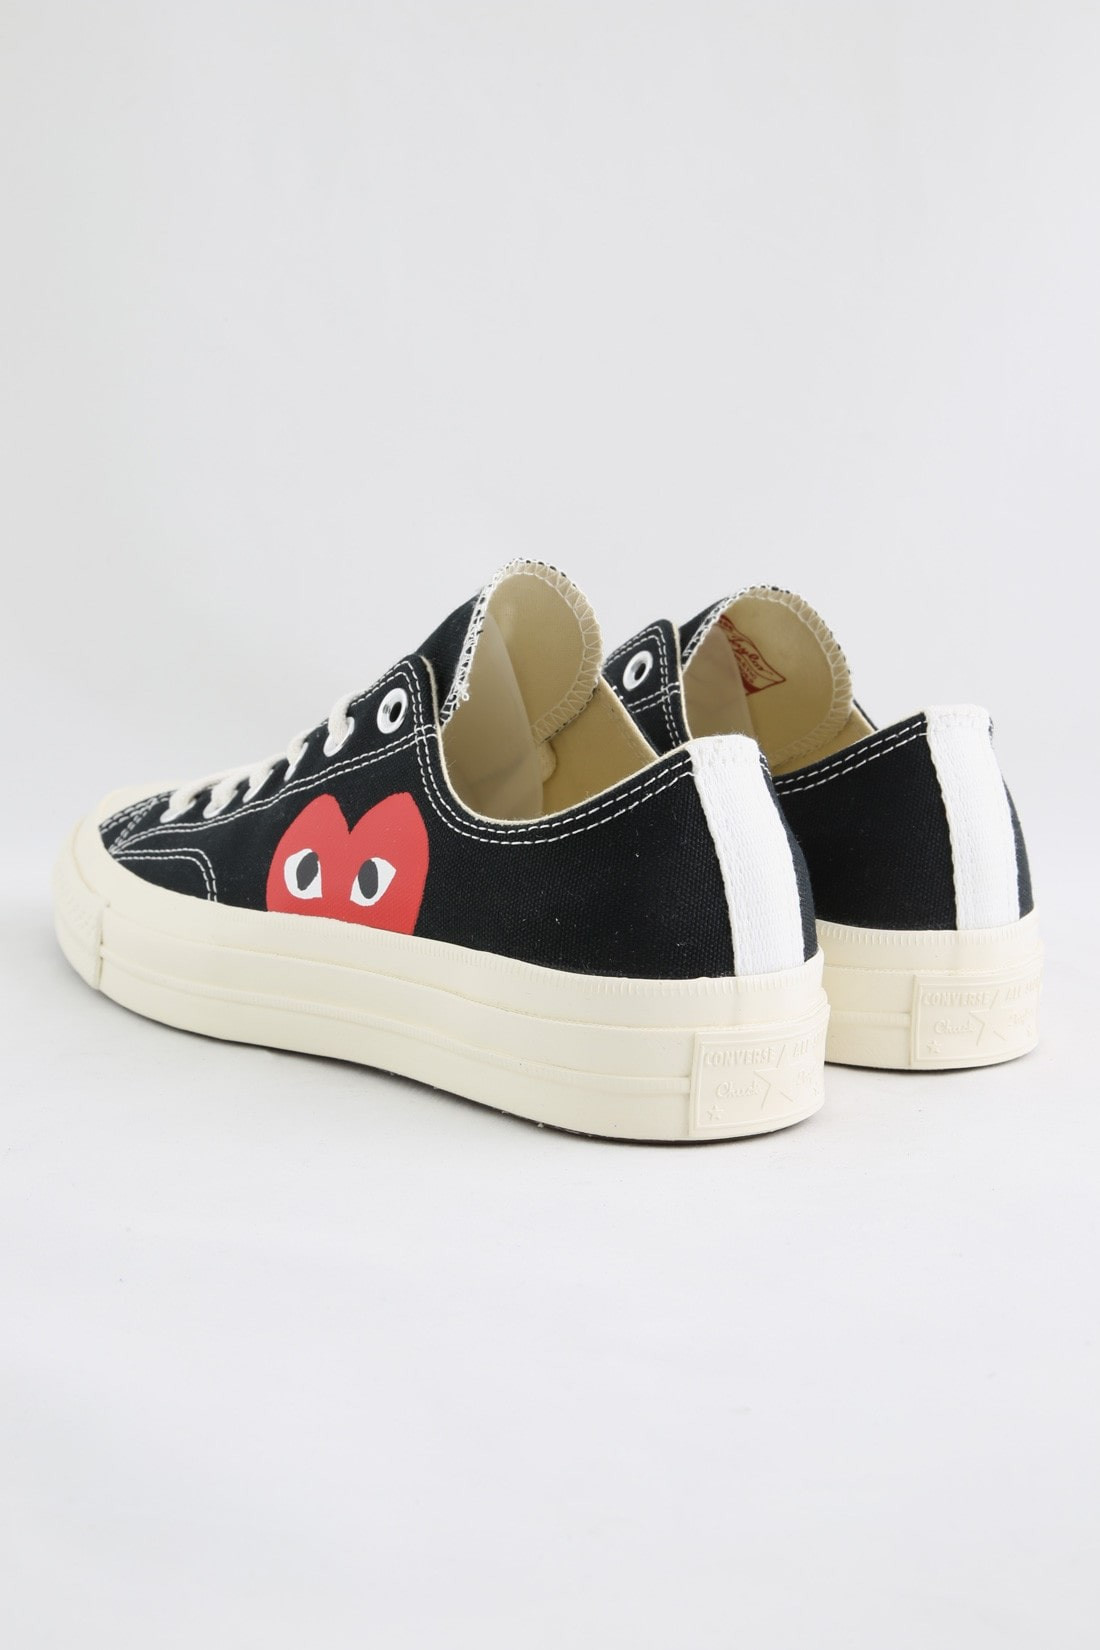 Play new chuck taylor low Black